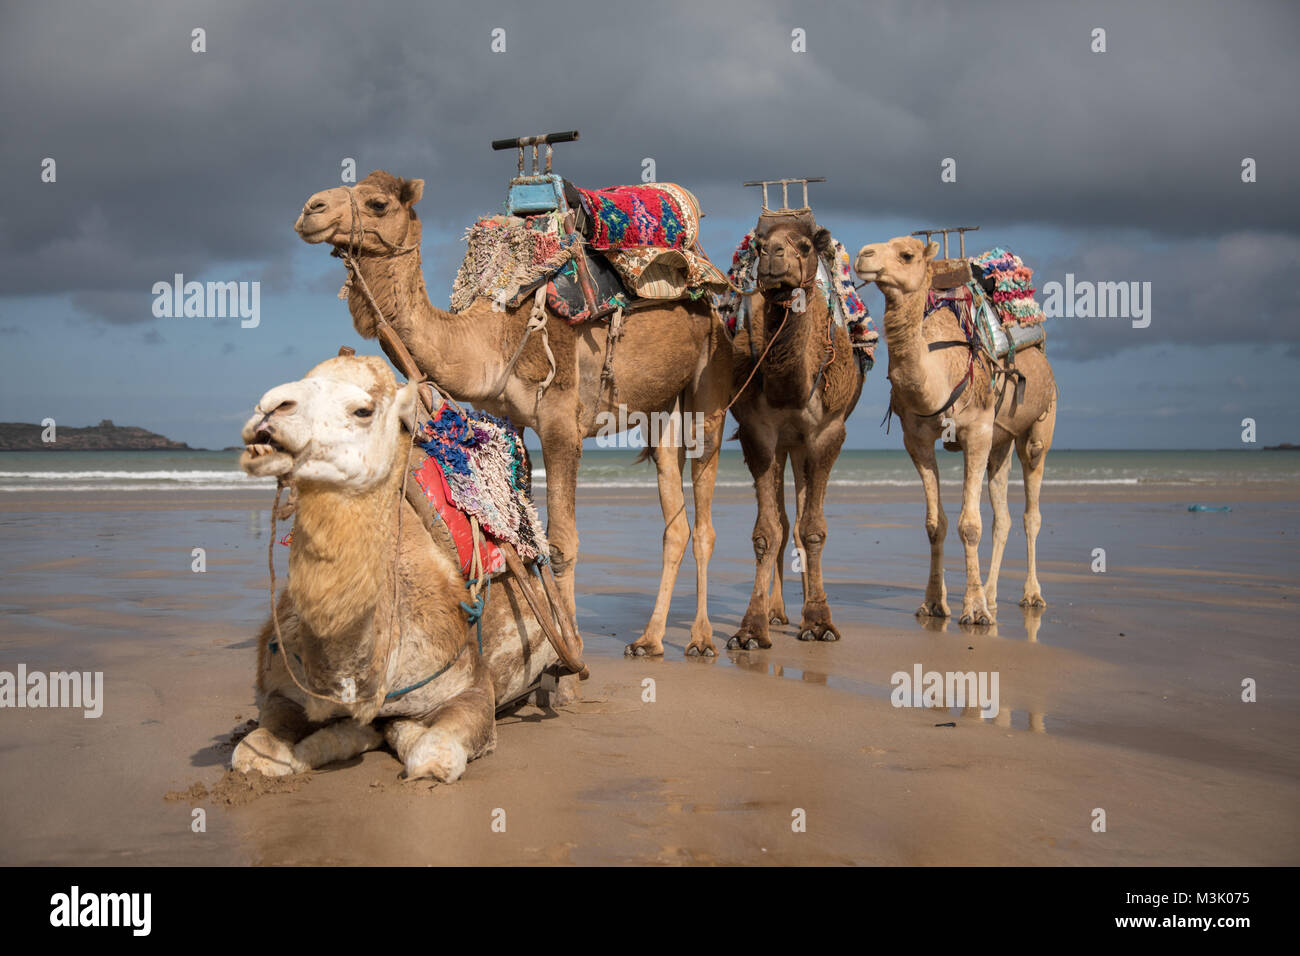 Camels that carry tourists resting in Essaouira beach in Morocco - Stock Image